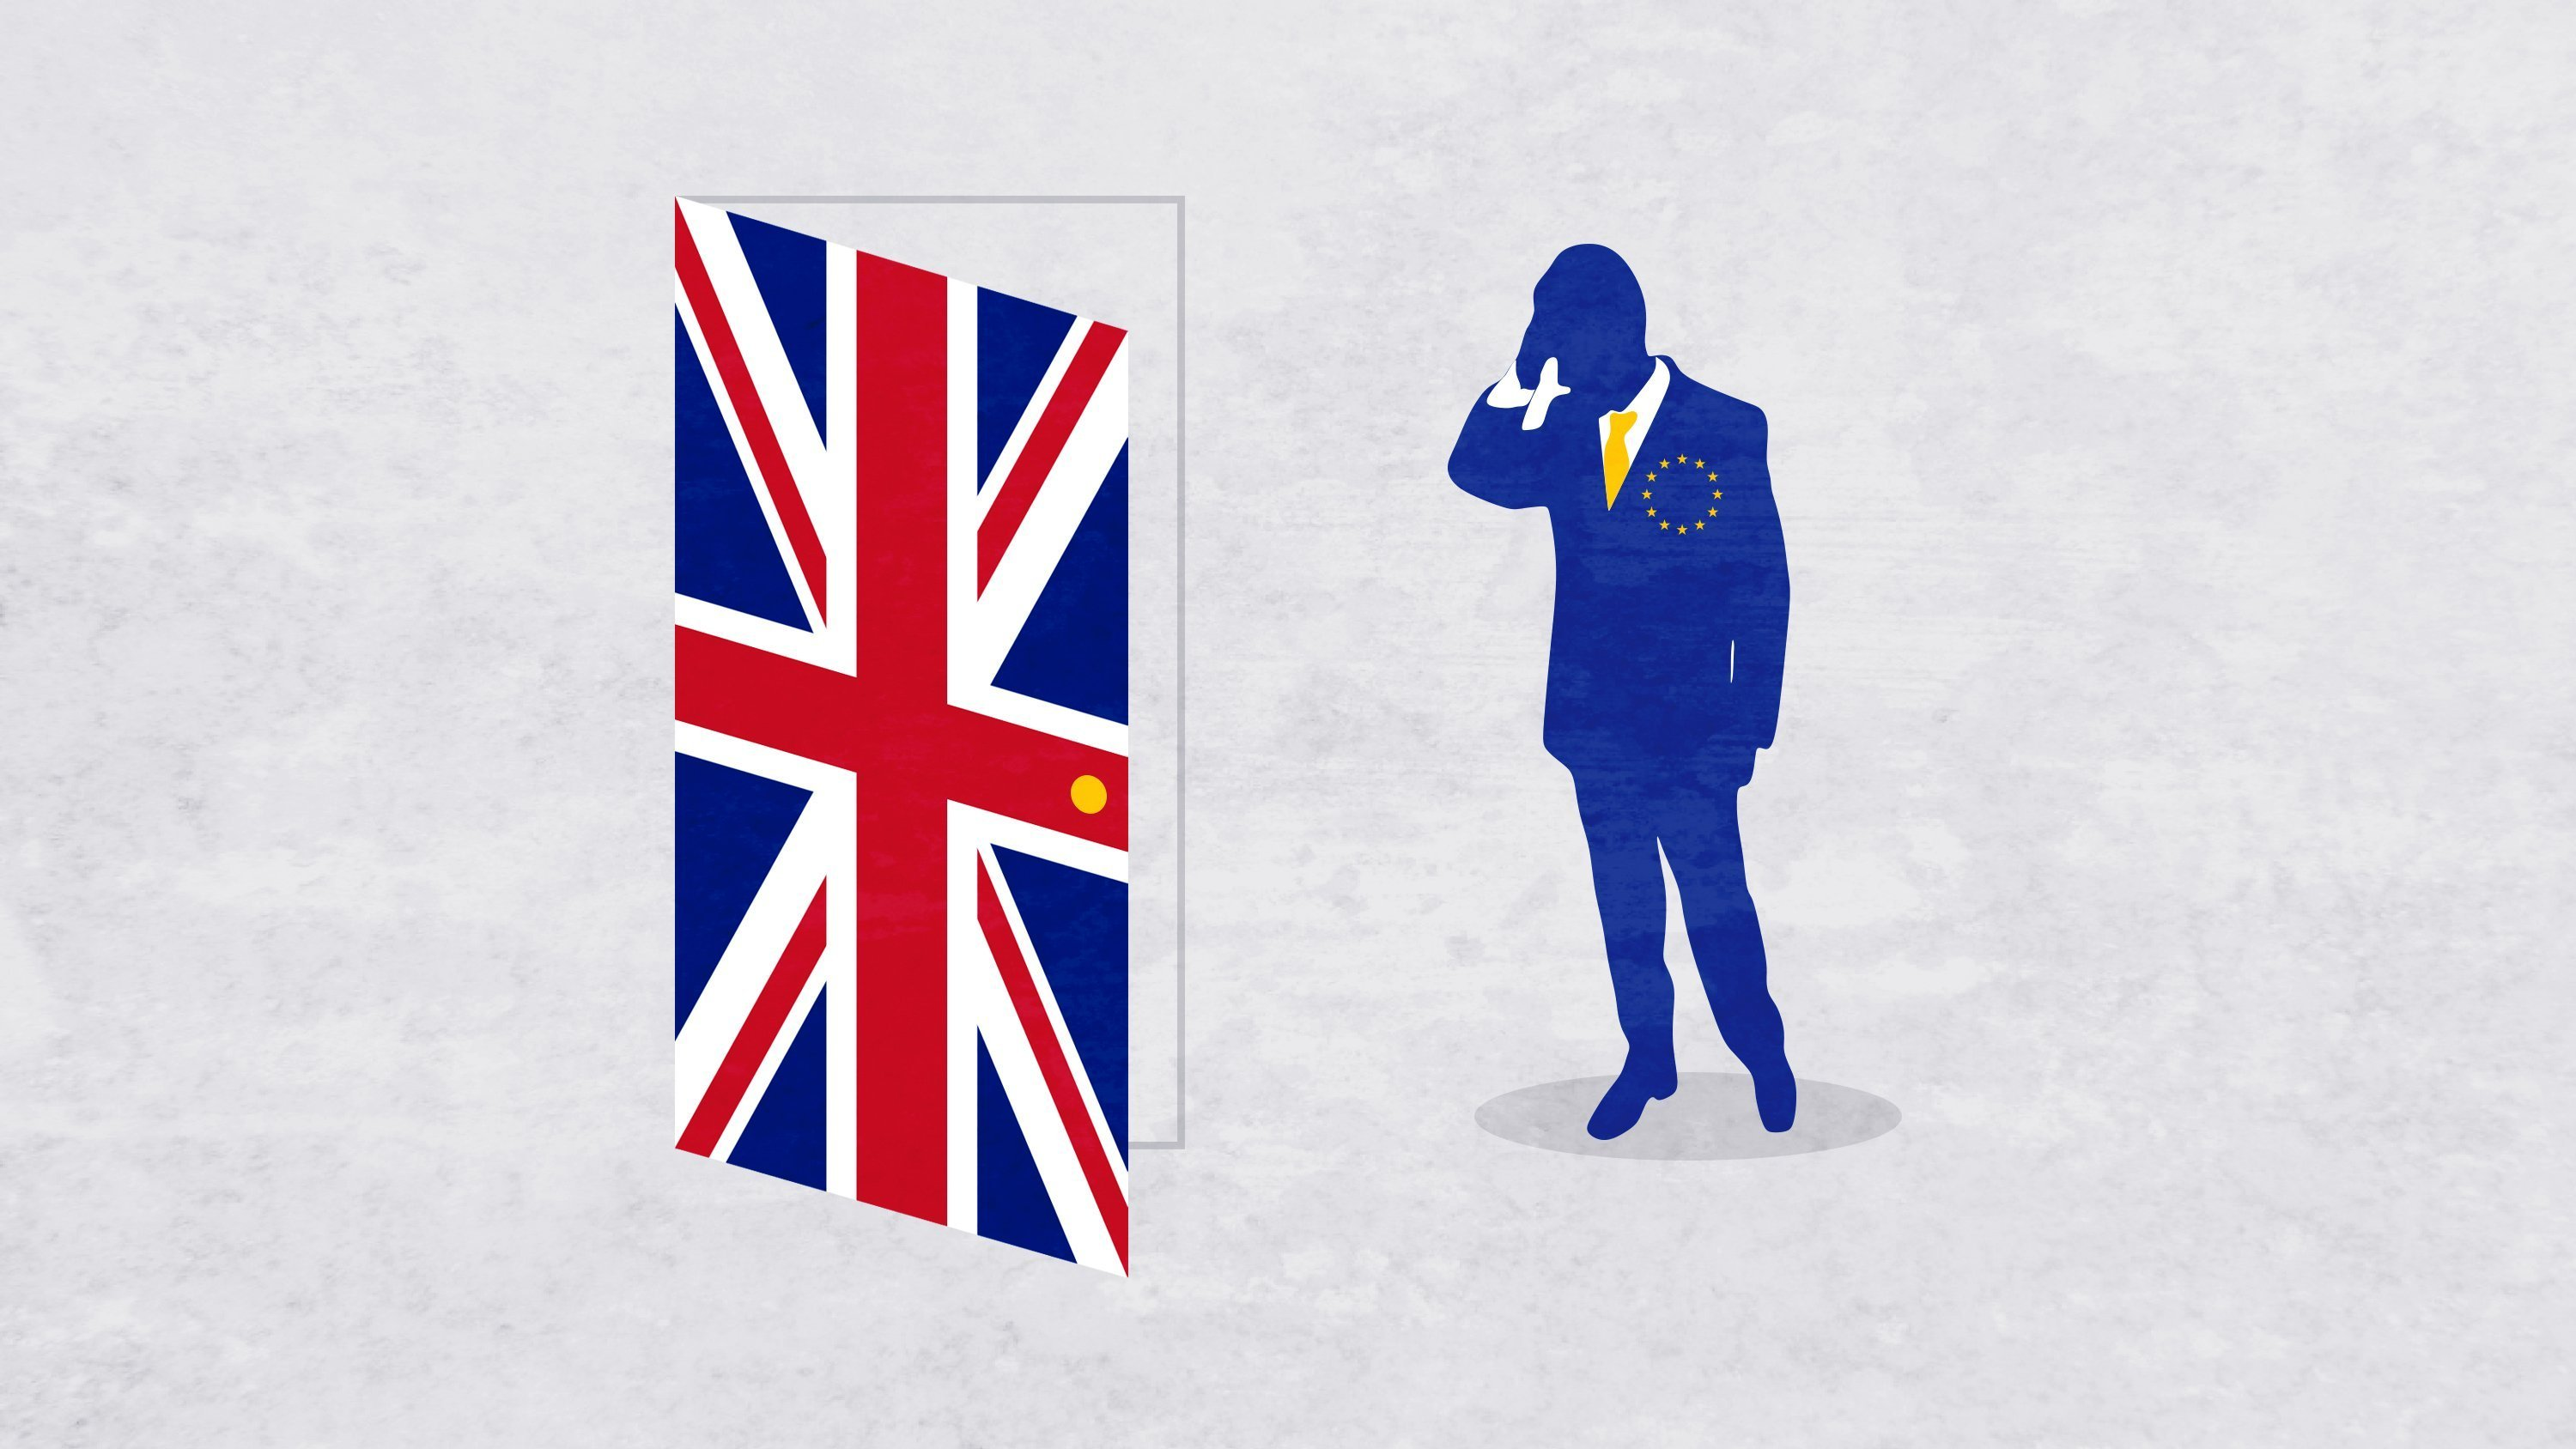 The UK is leaving the European Union after the Brexit vote.